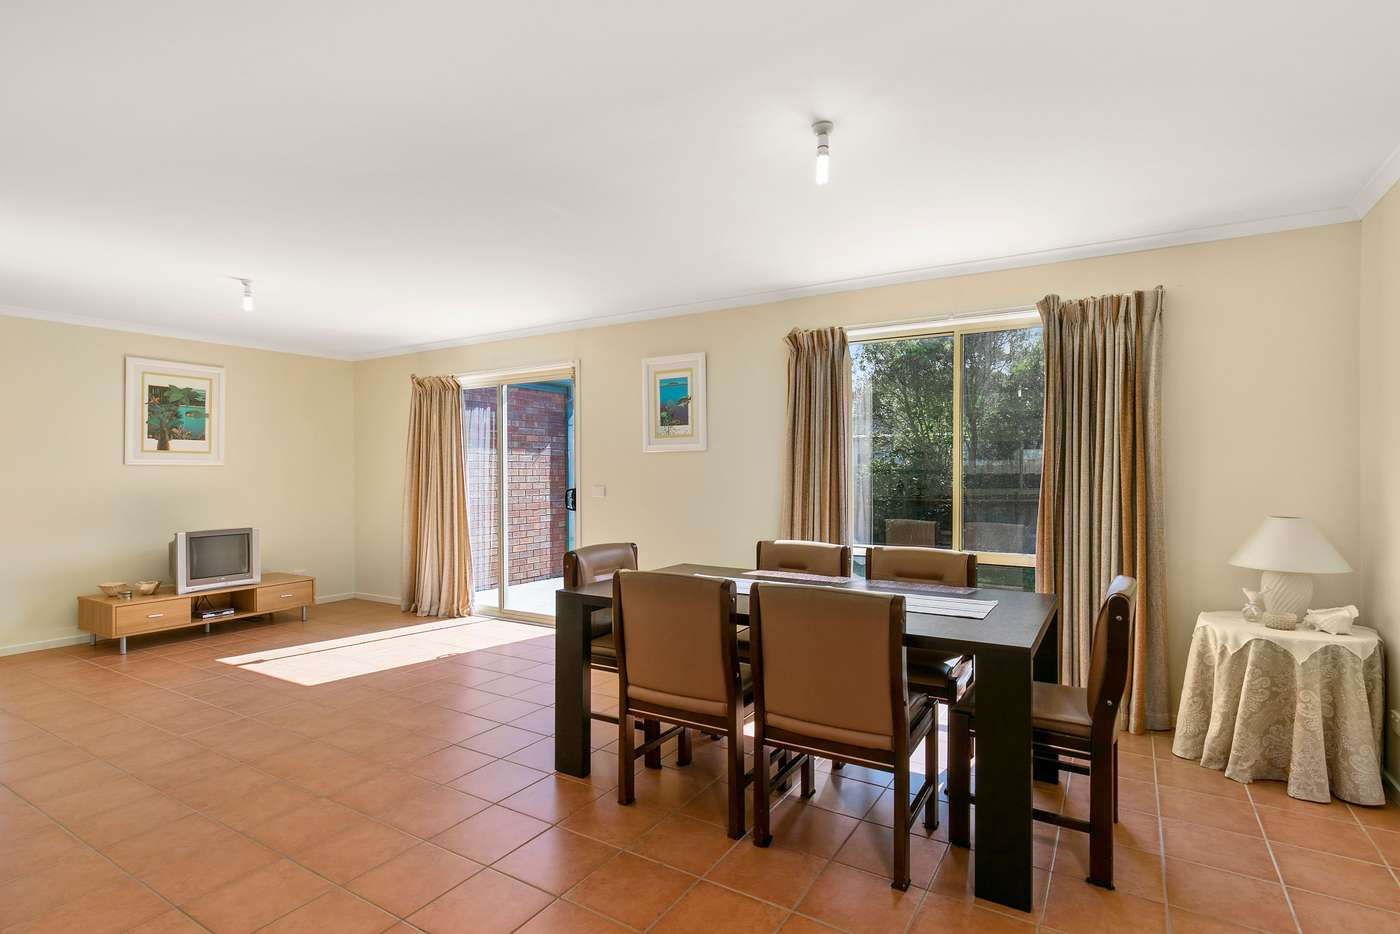 Fifth view of Homely house listing, 17 Carapooka Way, Cowes VIC 3922